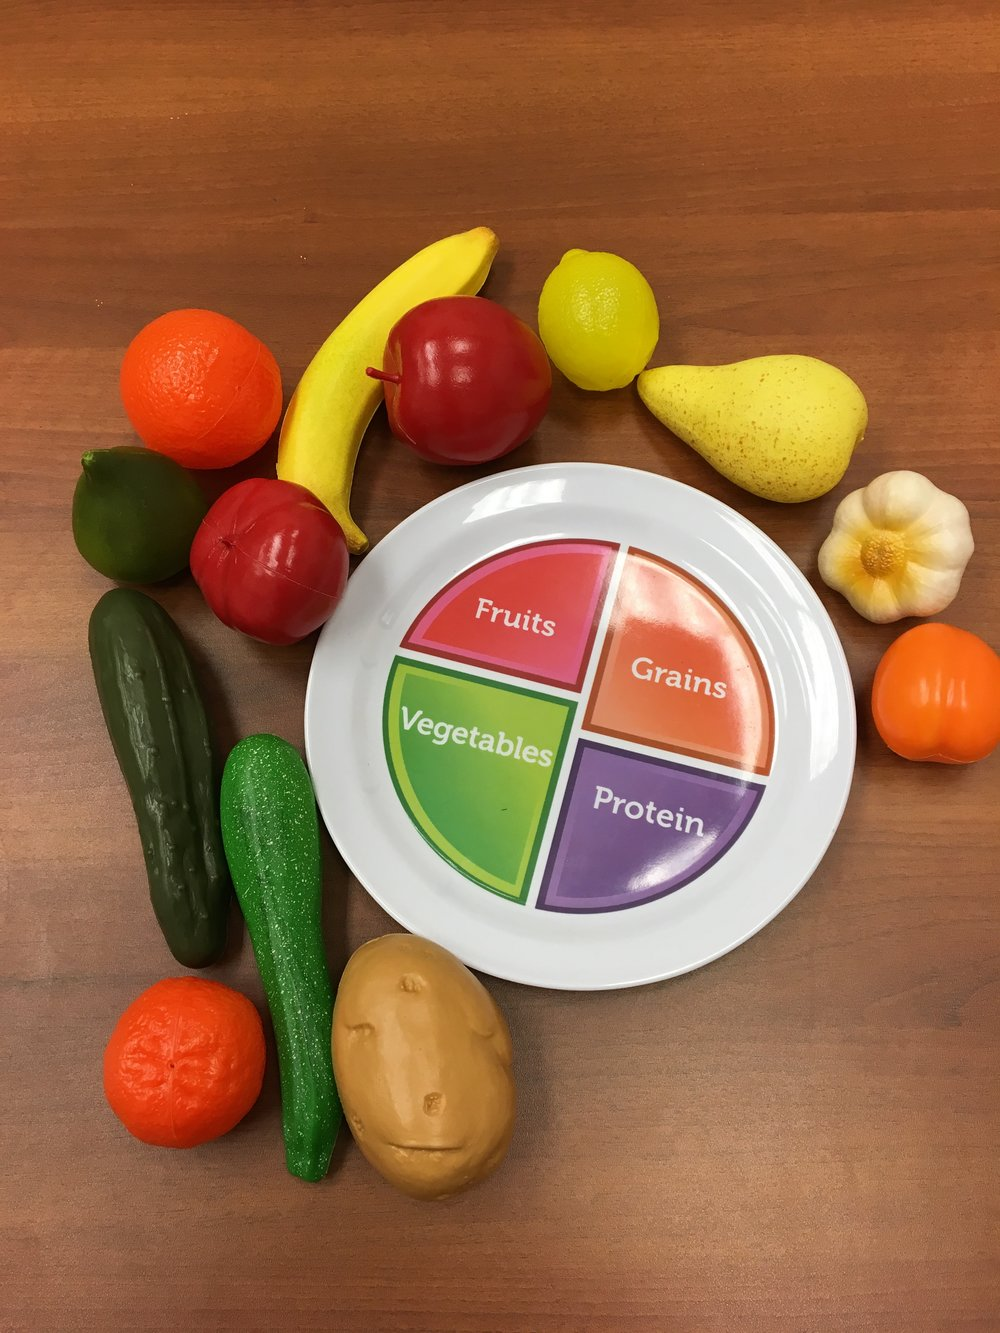 Let's Move Pgh Healthy Eating Plate